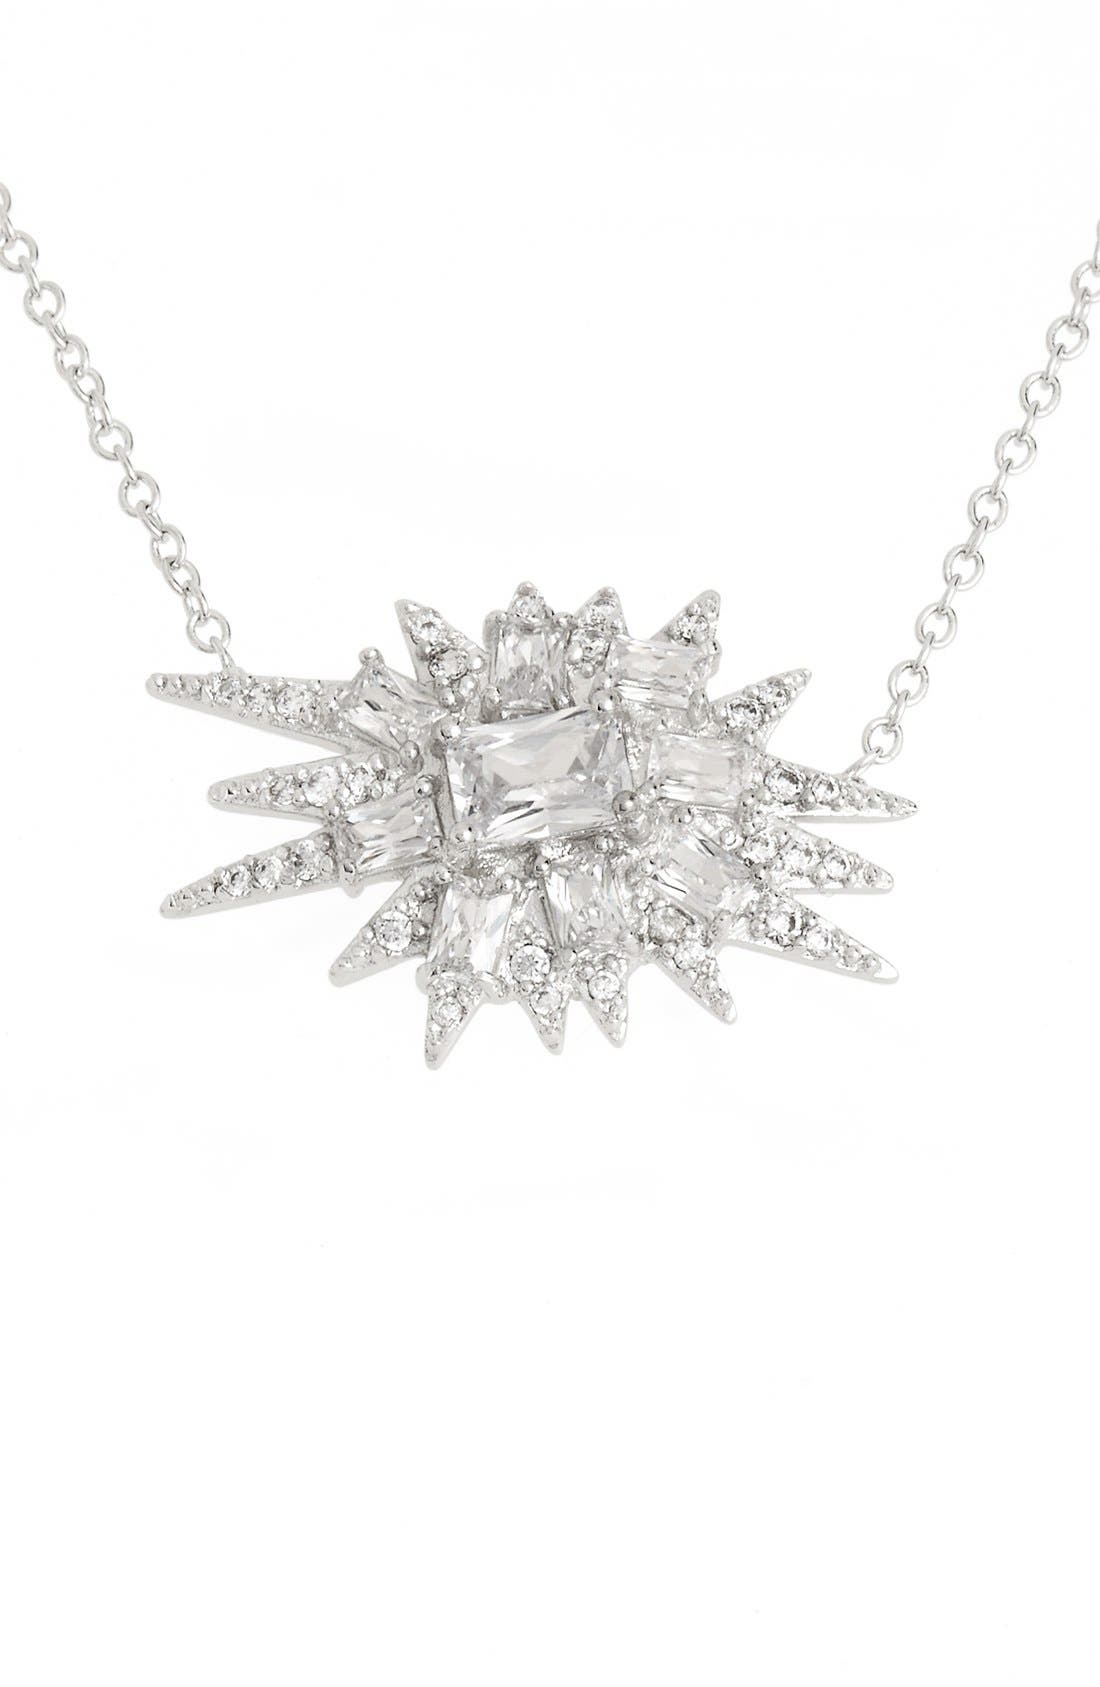 Main Image - CZ by Kenneth Jay Lane 'Explosion' Cubic Zirconia Pendant Necklace